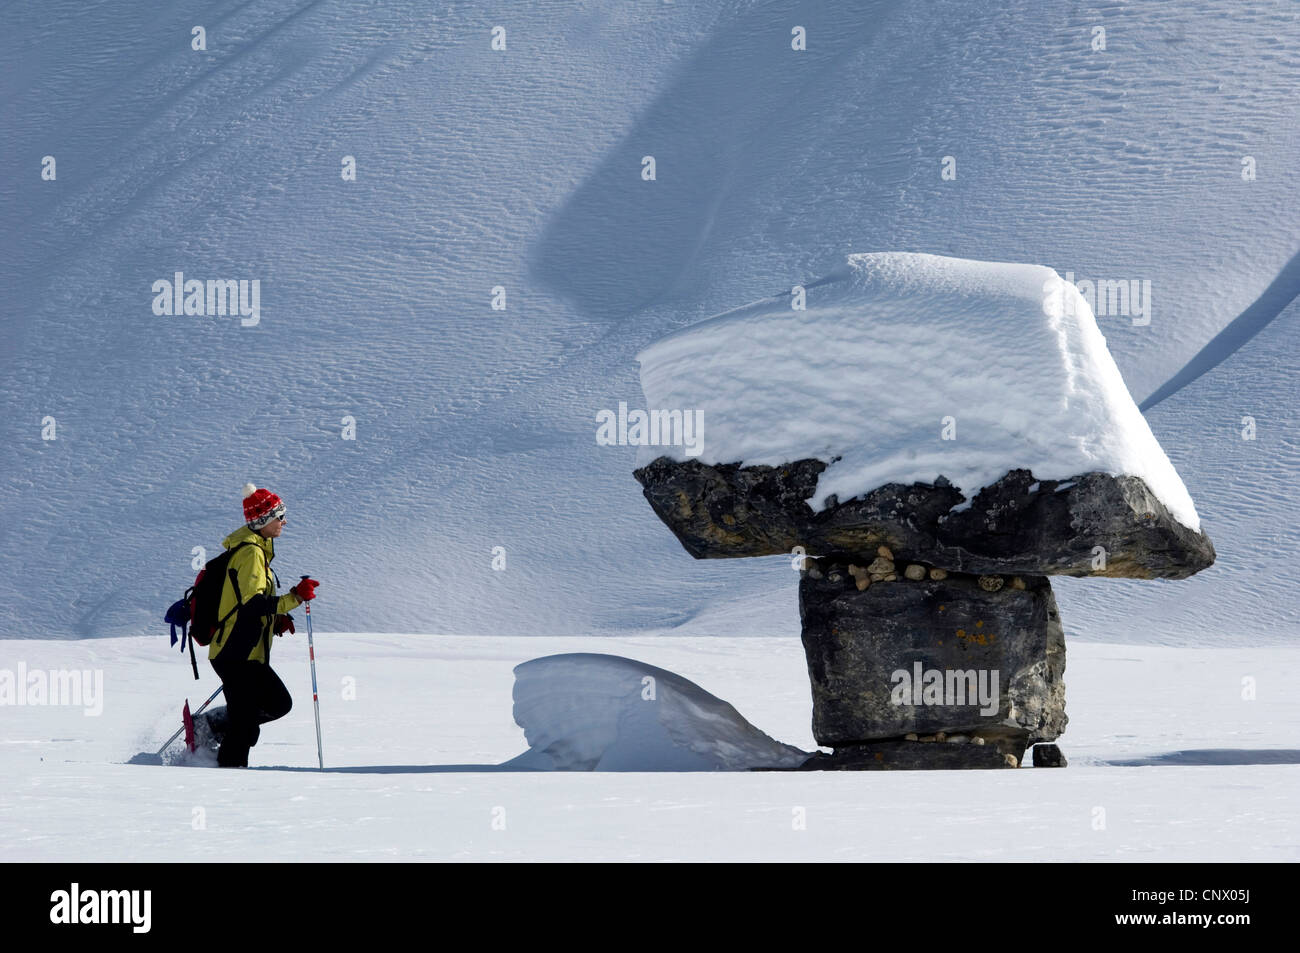 snow shoe hiker in north of Alps mountains, France - Stock Image